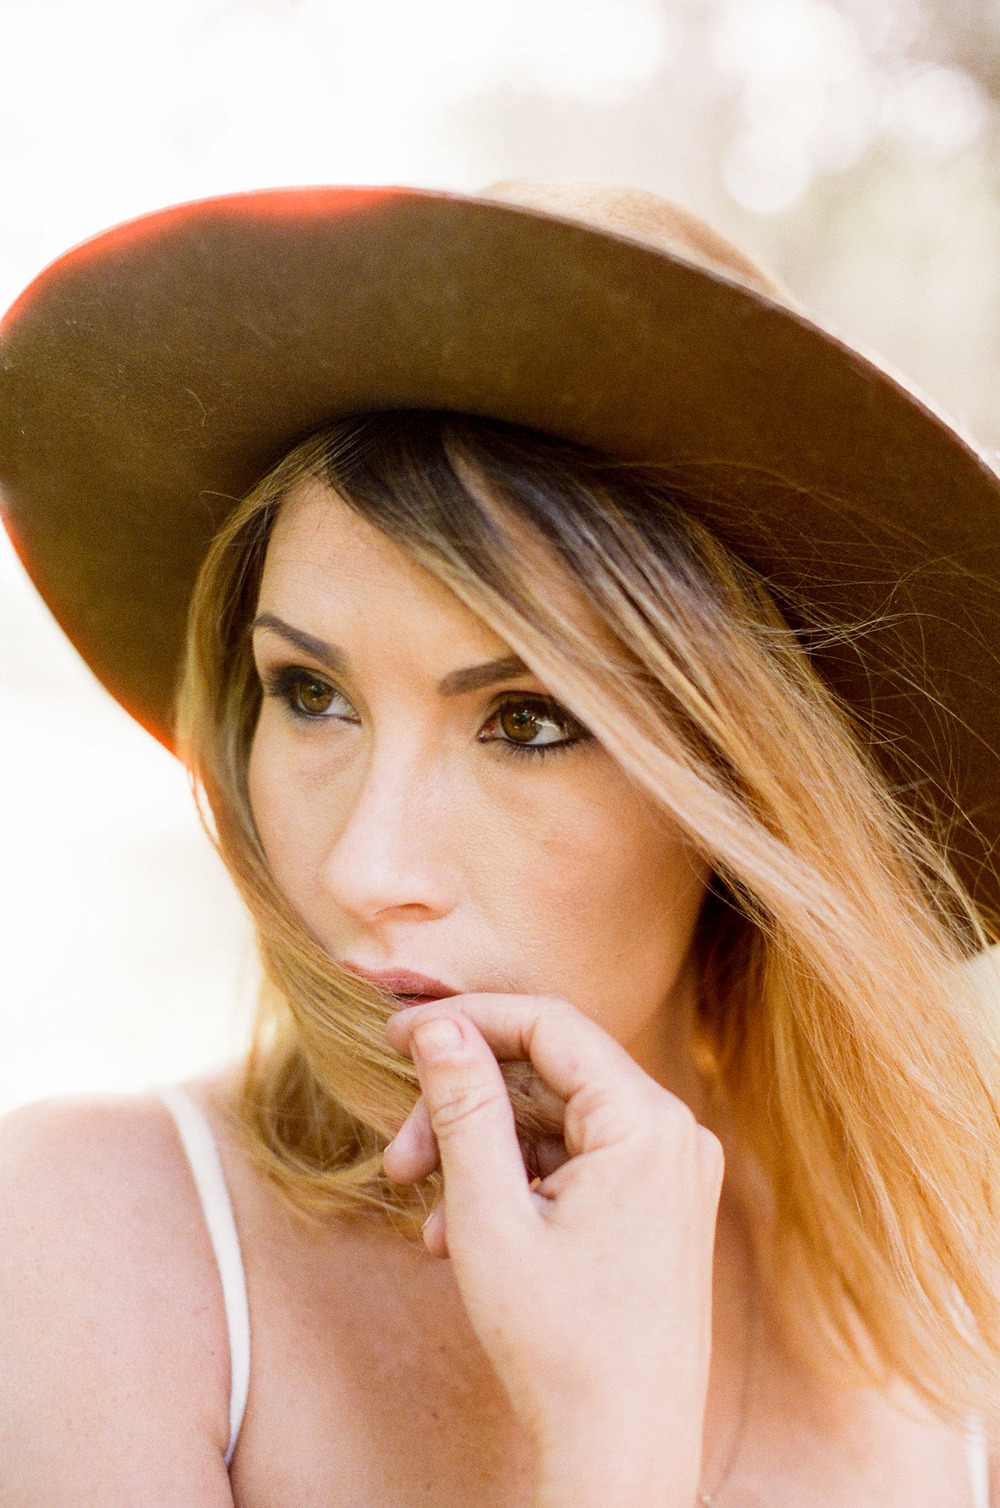 A beautiful woman in a hat, has her blonde hair blowing in the wind in this family photography session by Twinkle Star Photography, an Orcutt California film photographer.